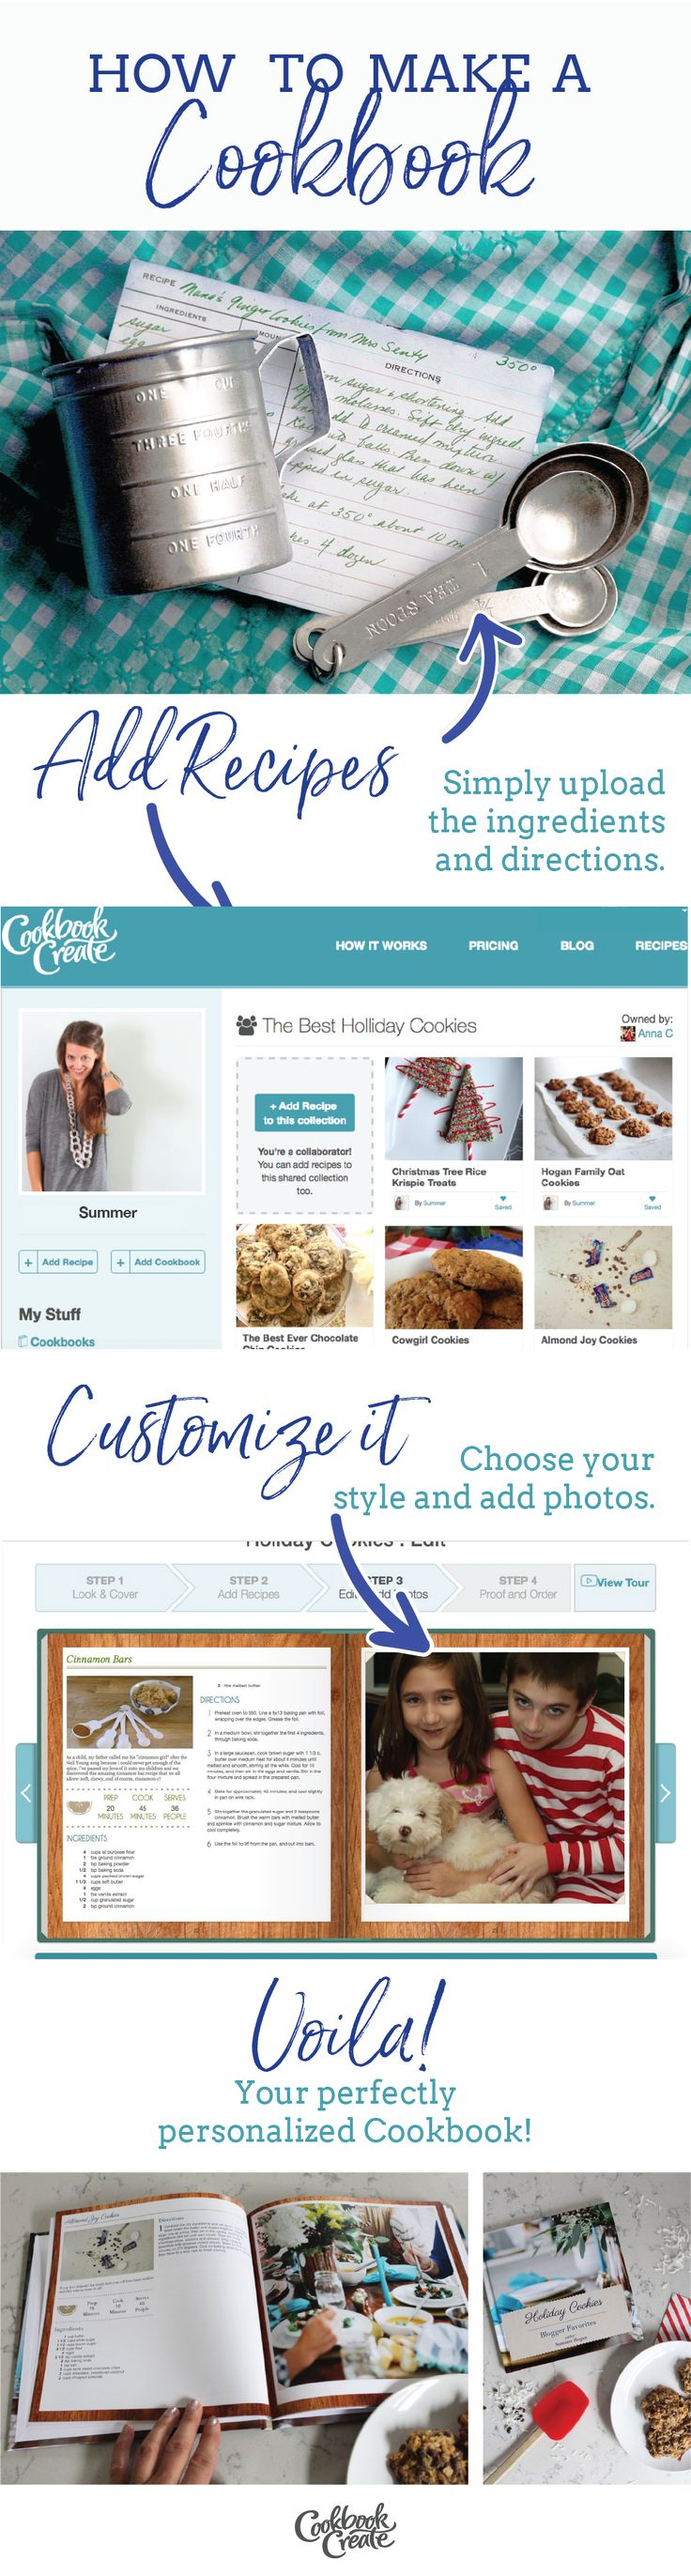 Want to make a custom cookbook? Add your own recipes and images and Voila!